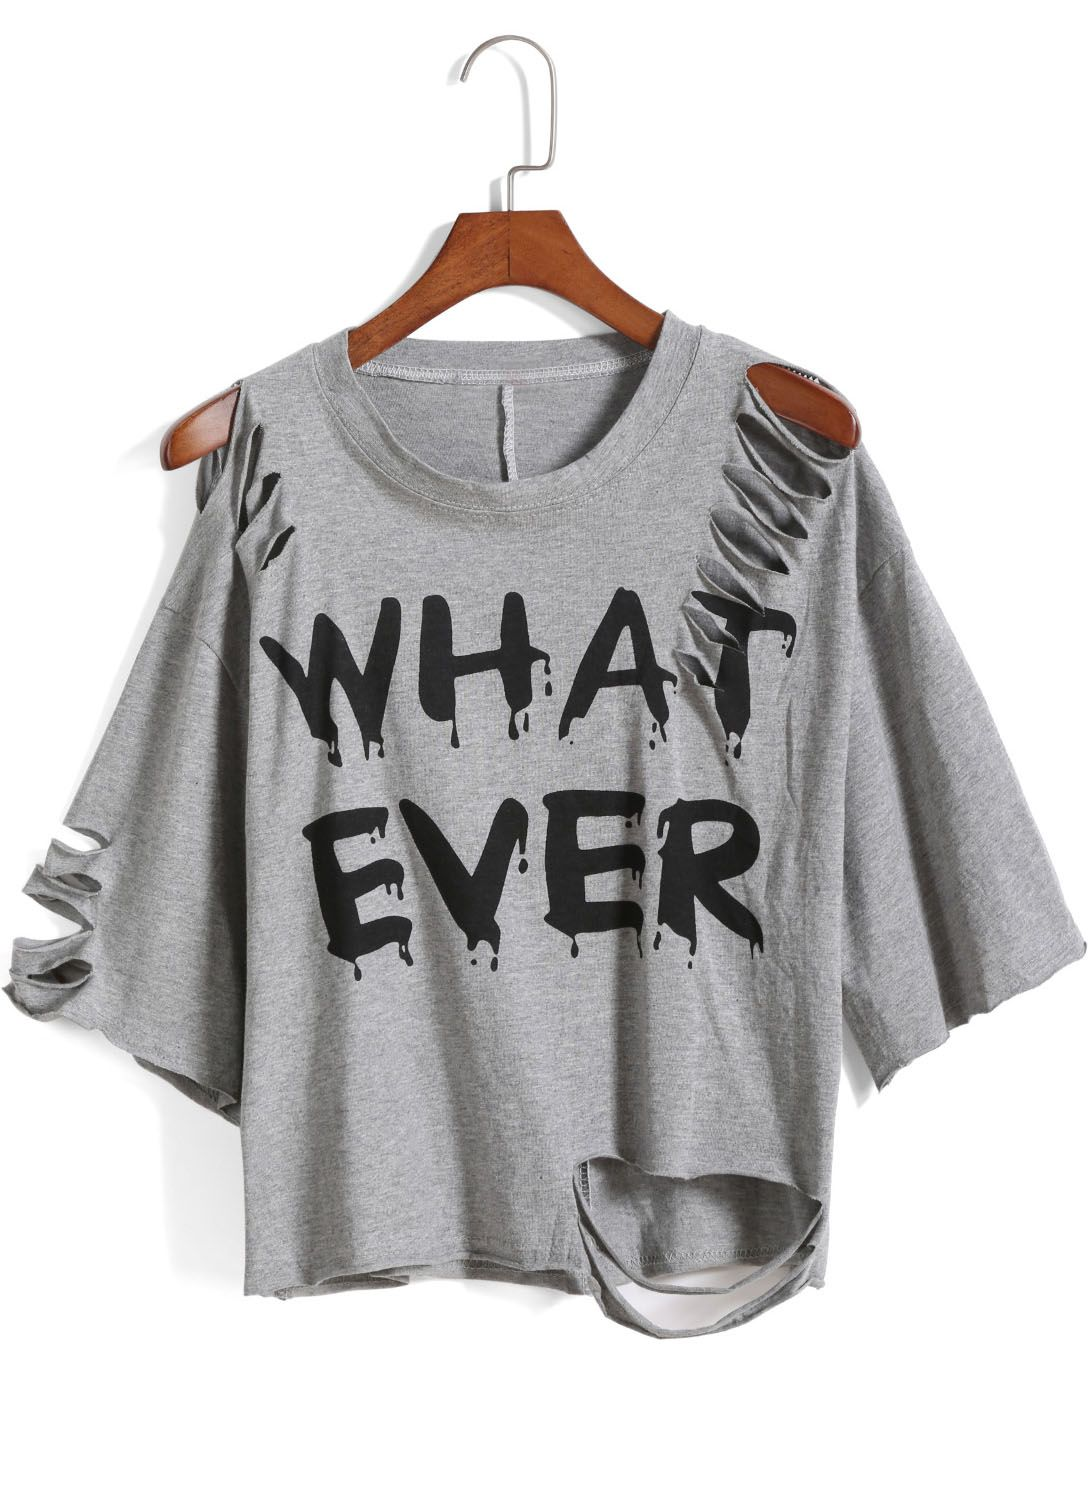 Grey Round Neck Ripped WHAT EVER Print TShirt Destroyed